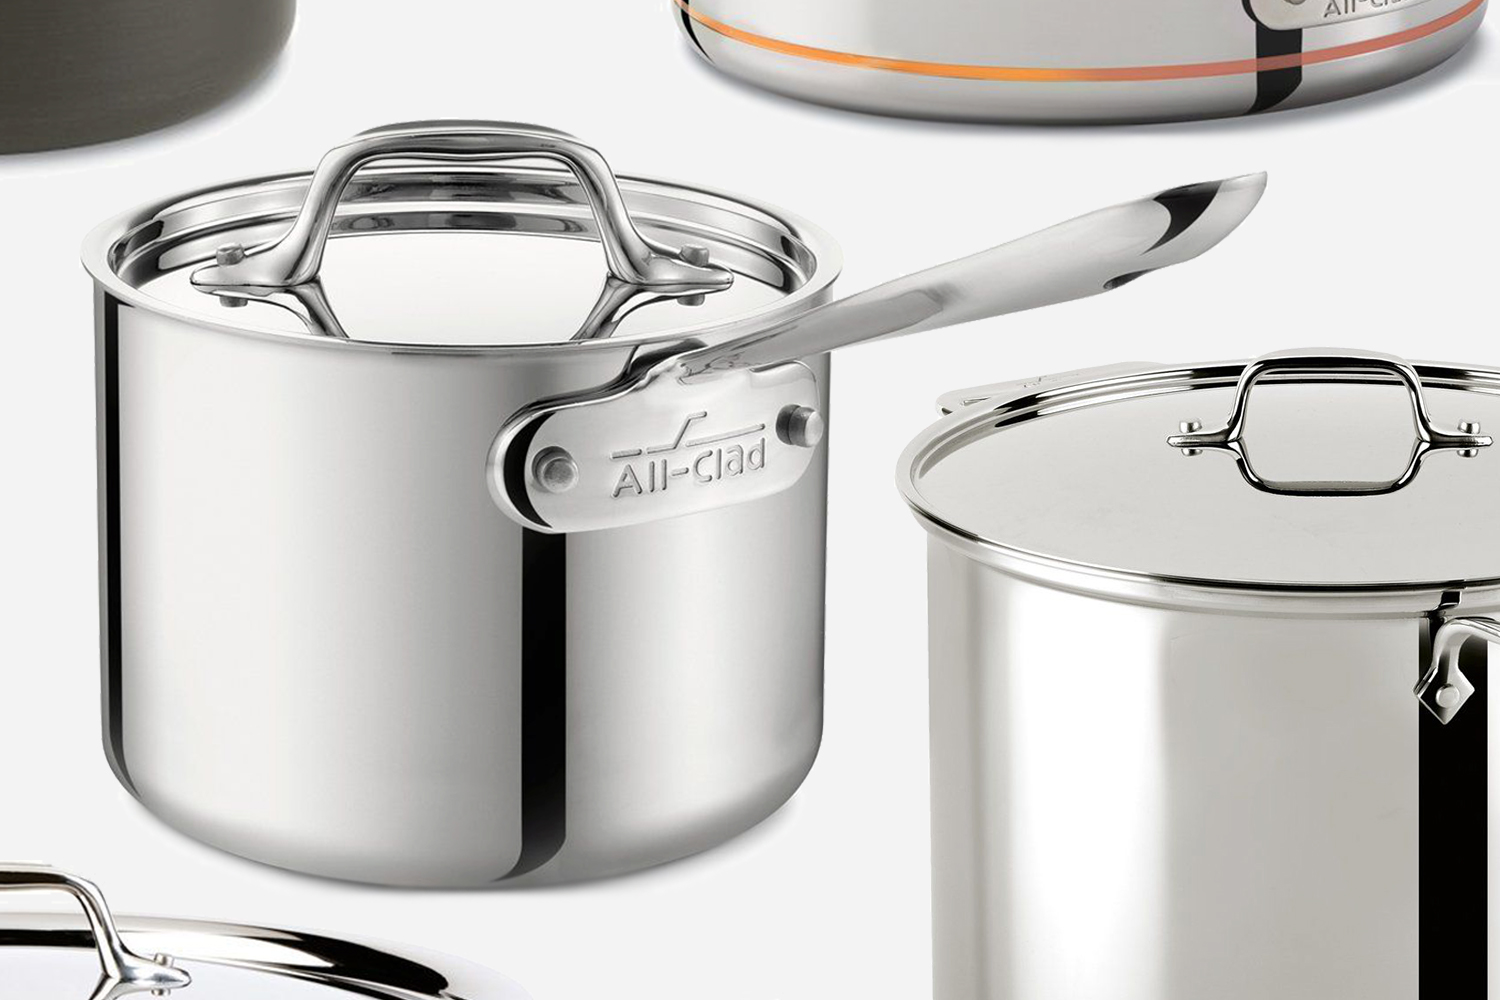 Deal: All-Clad Cookware Is Up to 84% Off During This Sale. Seriously.